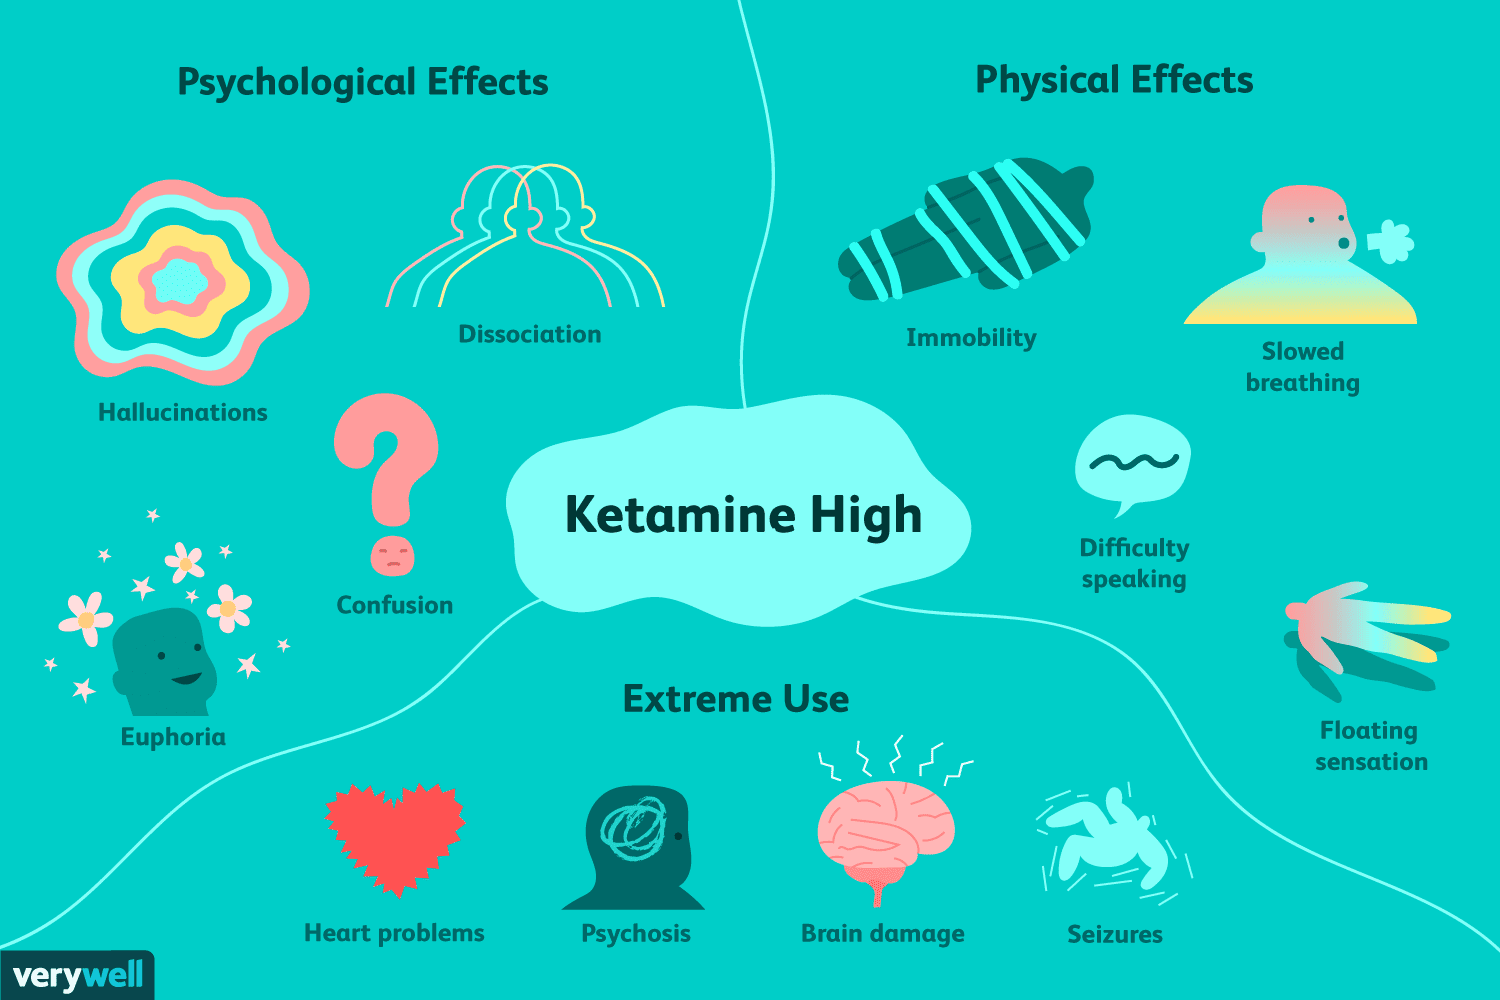 K Hole and the Awful Effects of Ketamine